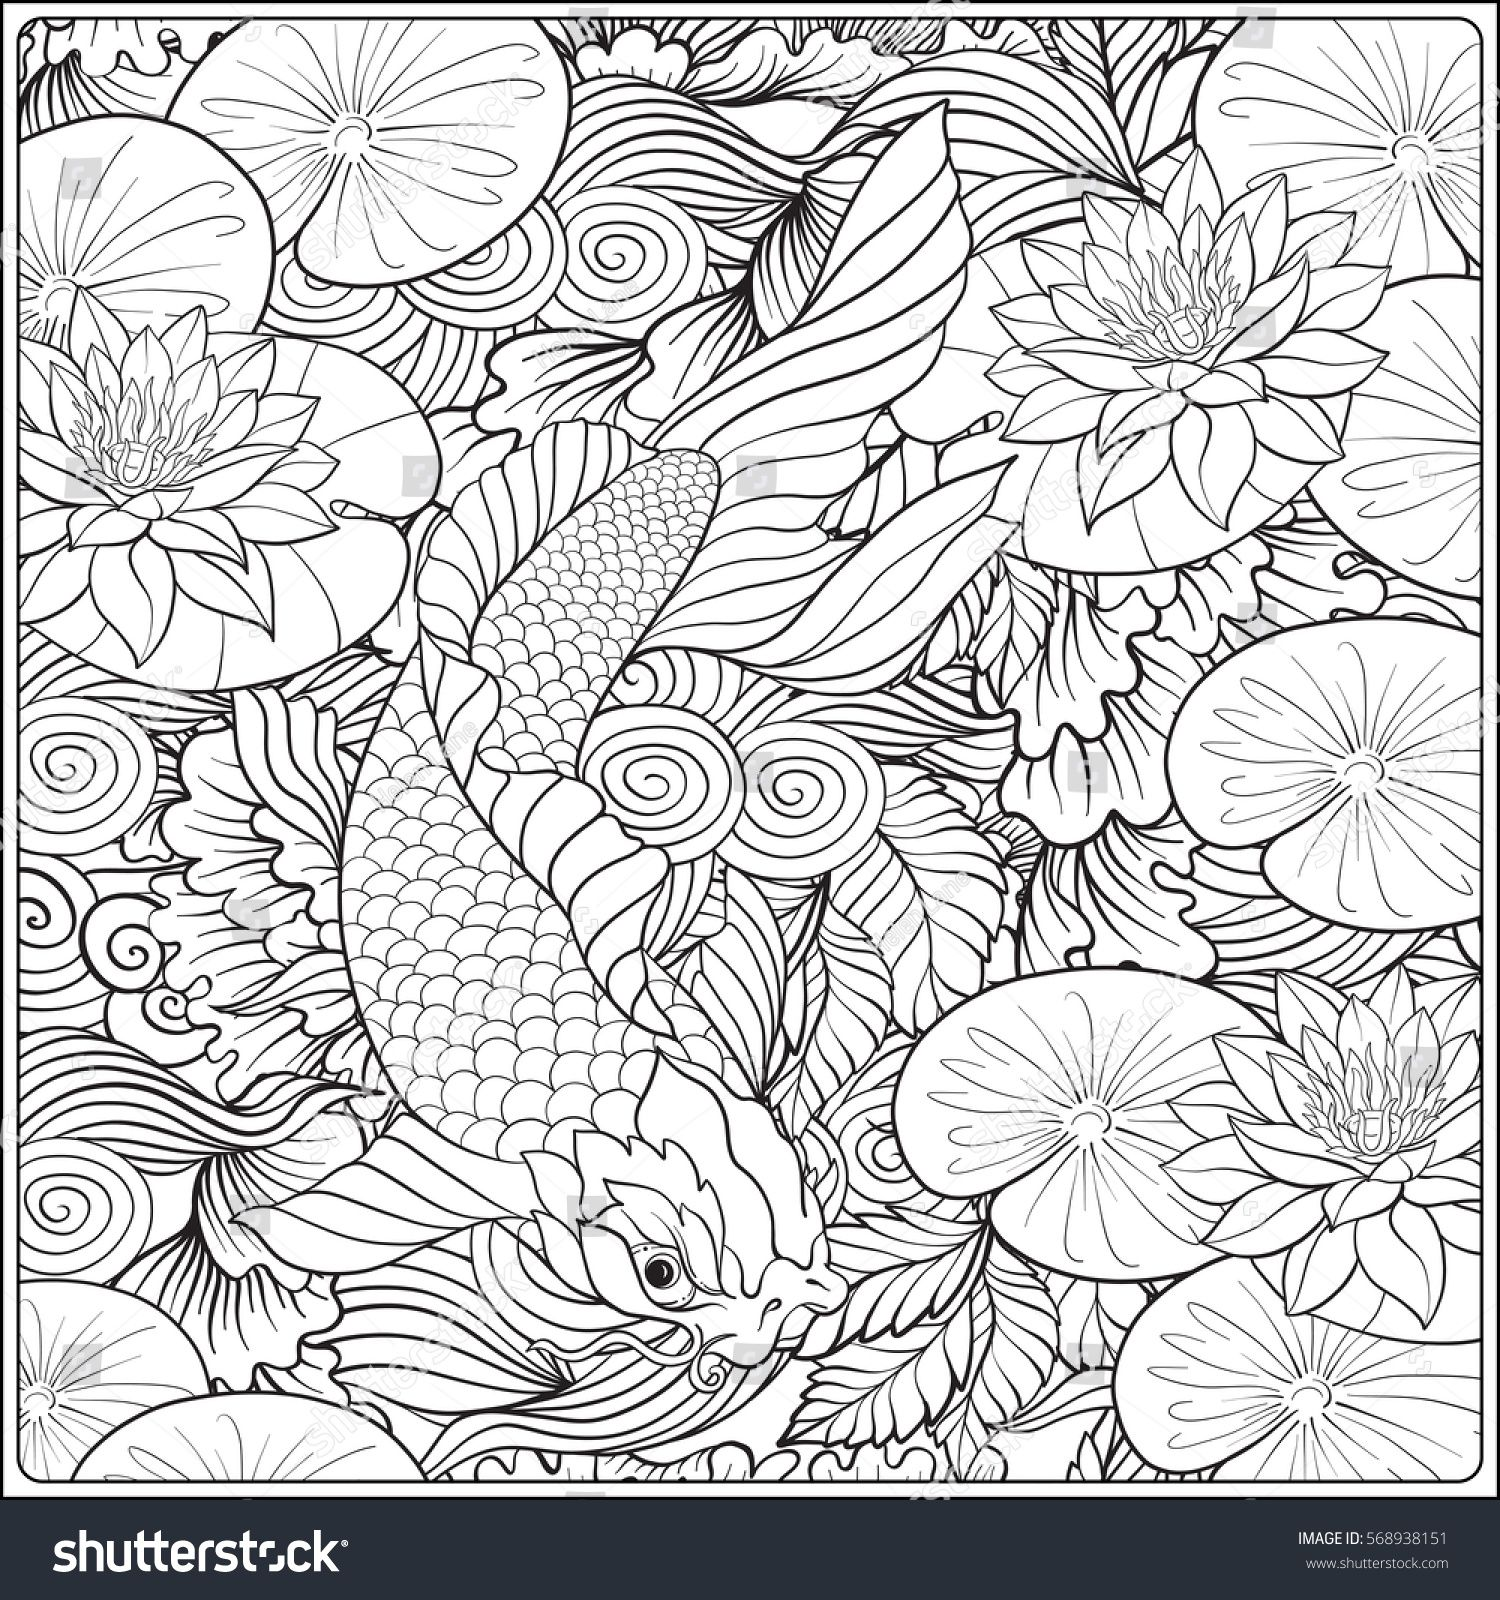 Japanese landscape with lotus and fish outline drawing coloring page coloring book for adult vector stock illustration